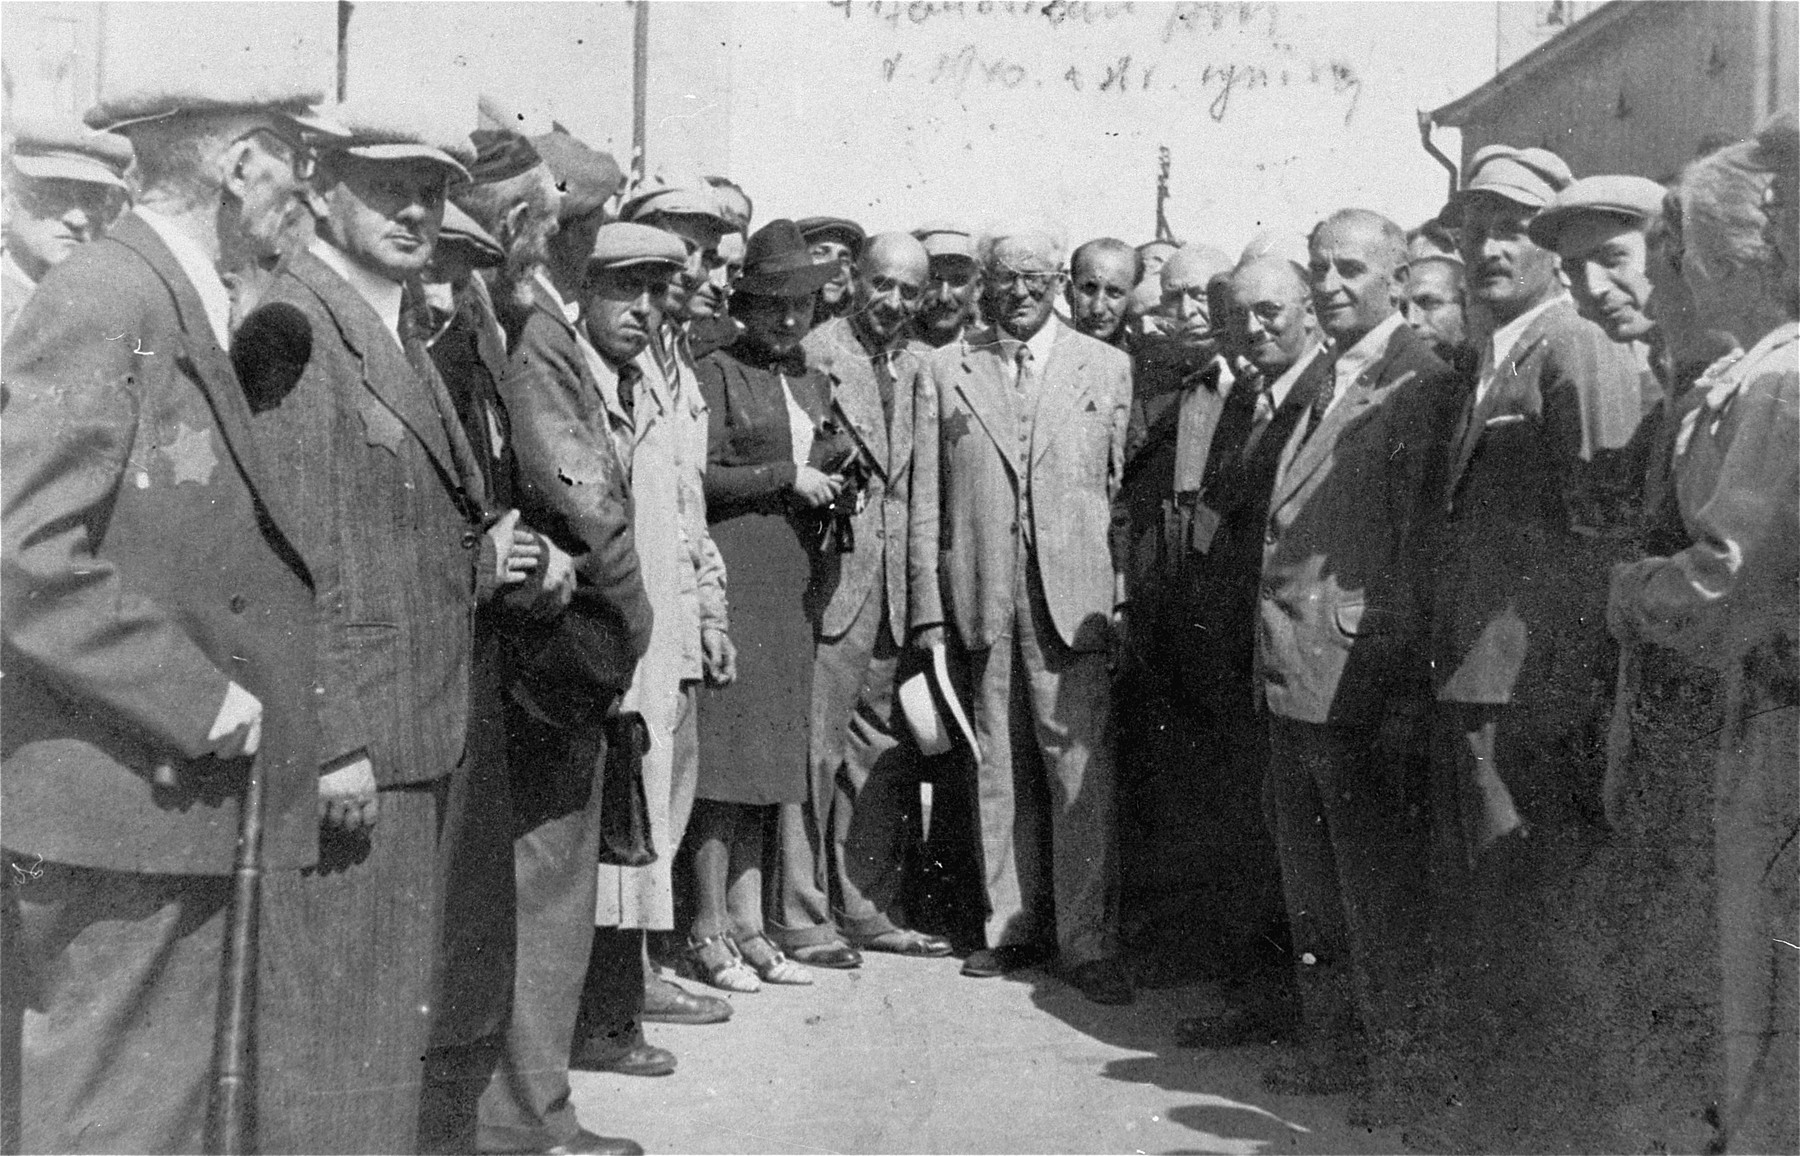 Jewish council chairman Mordechai Chaim Rumkowski (center) stands among a crowd of people who have gathered outside in the Lodz ghetto.  Also pictured are Leon Rozenblat (center, left) and Dora Fuks (next to Rozenblat).